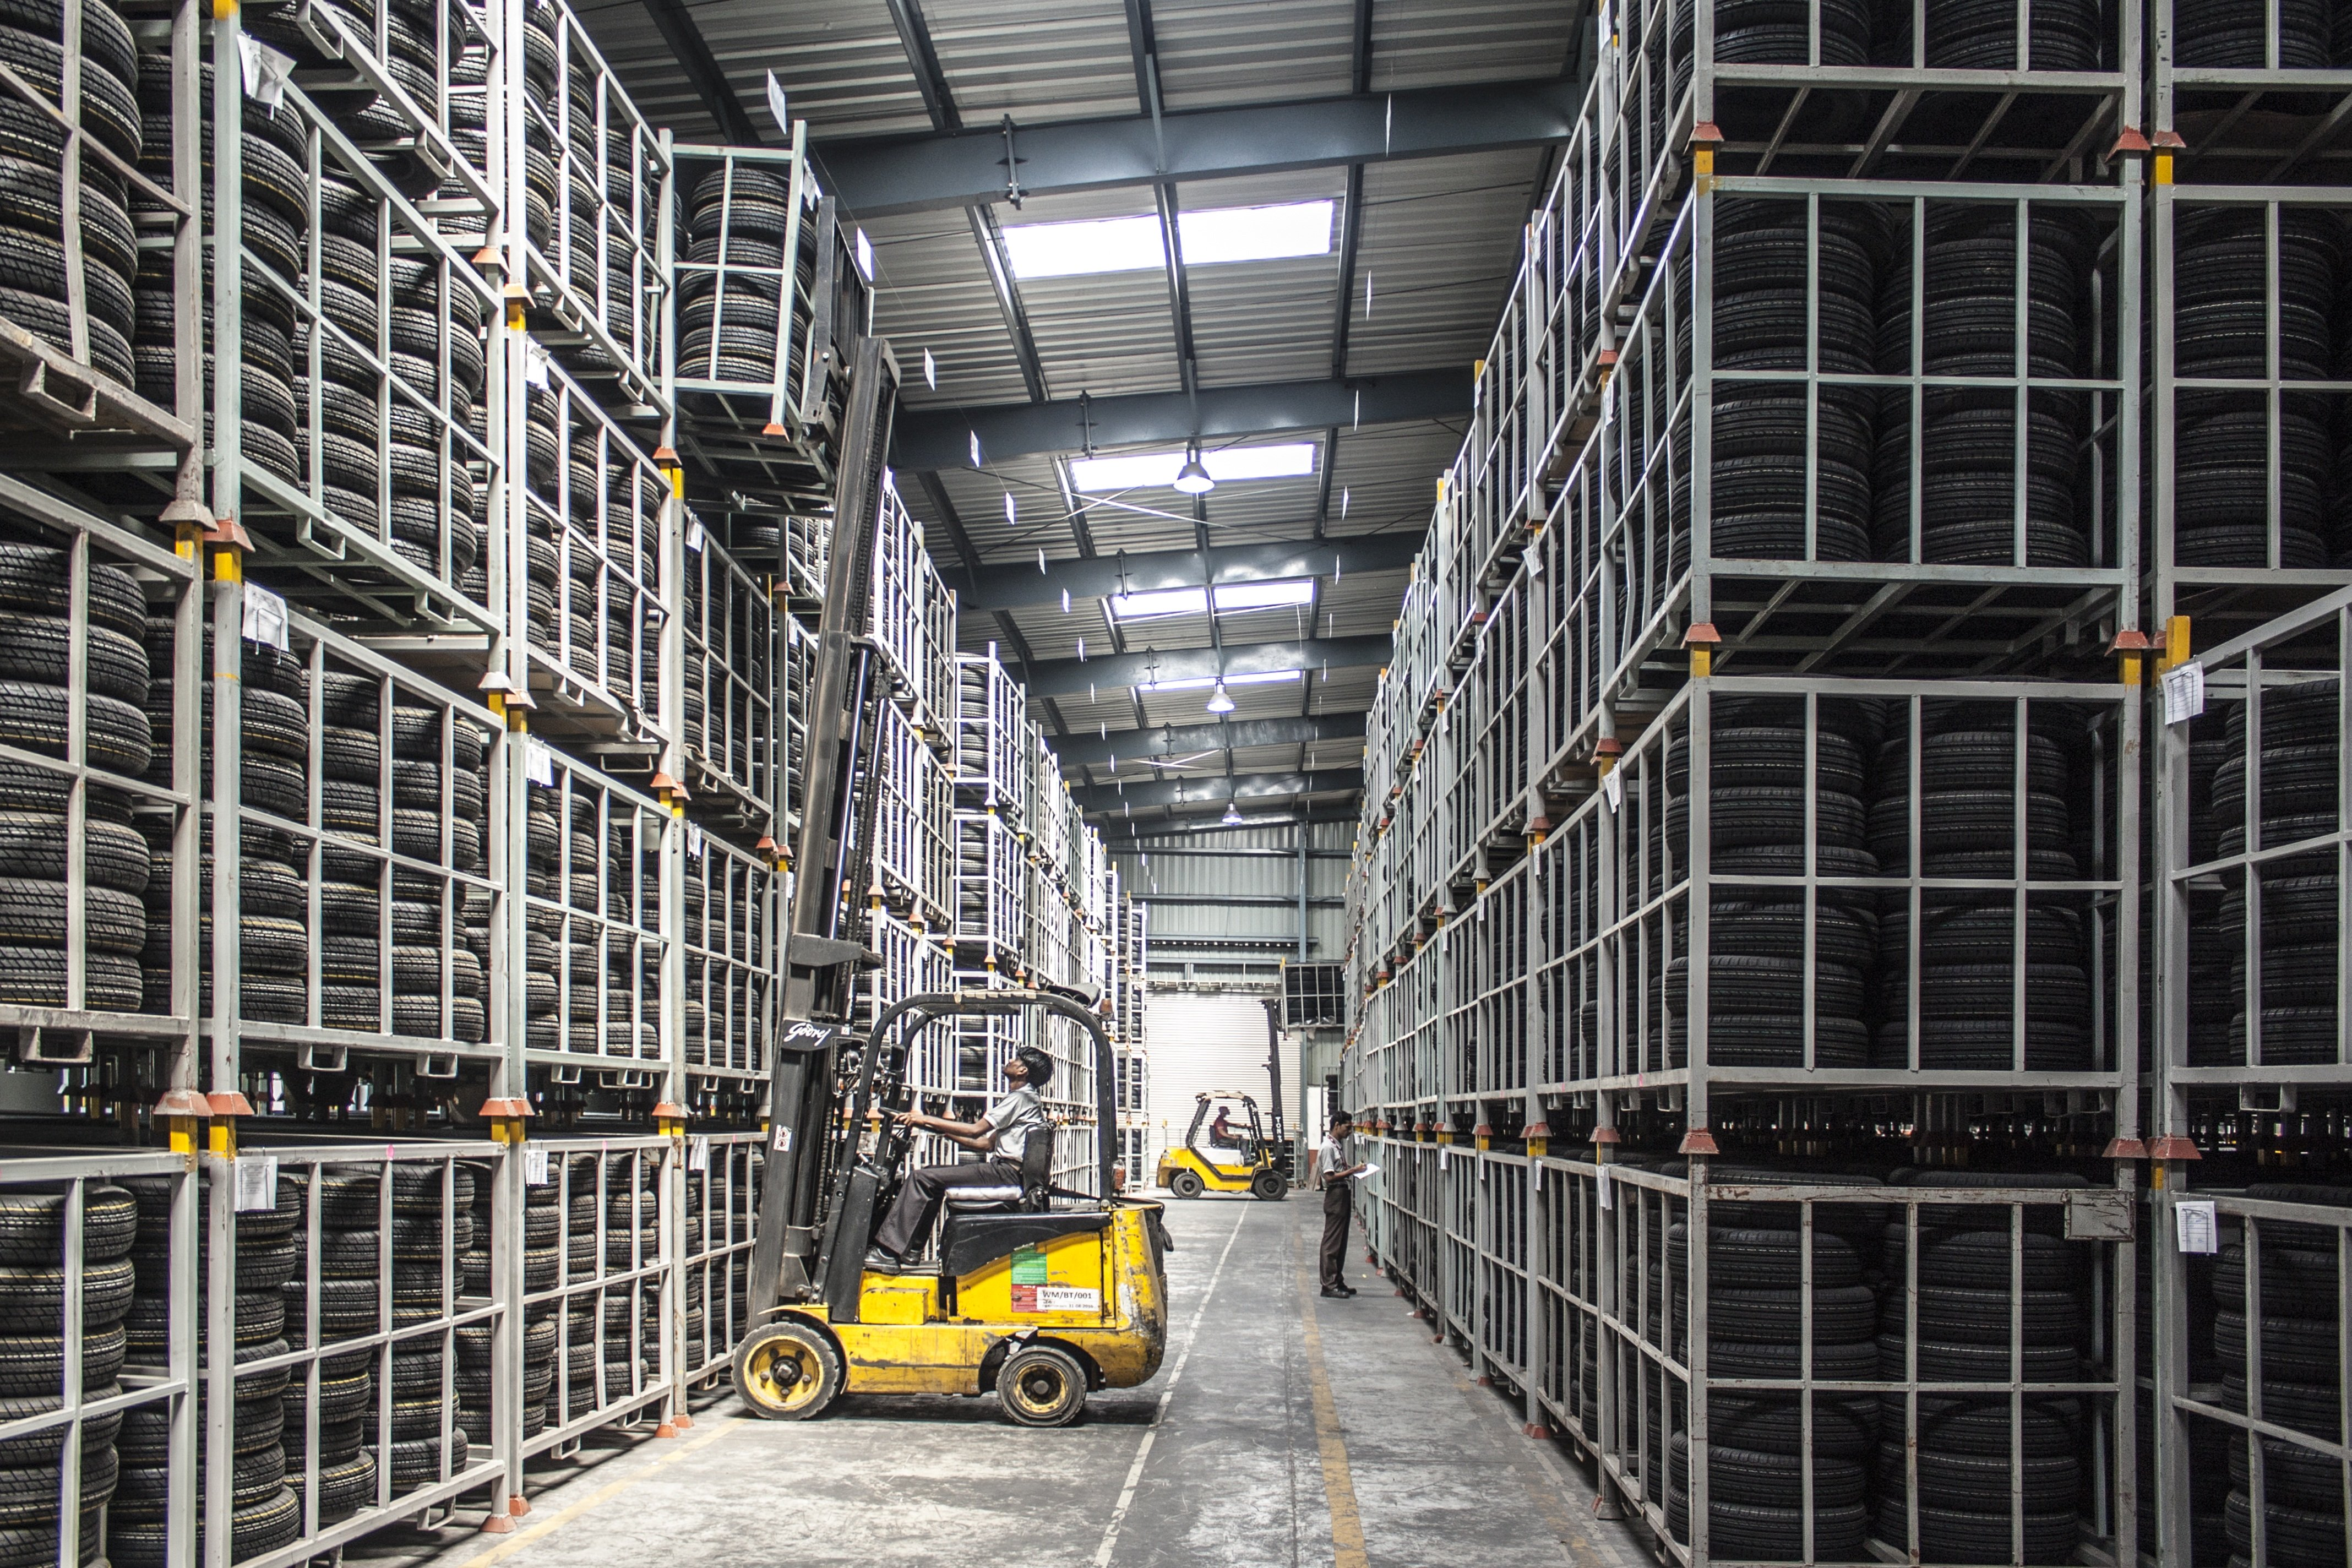 Forklift Injuries At Work: What You Need To Know